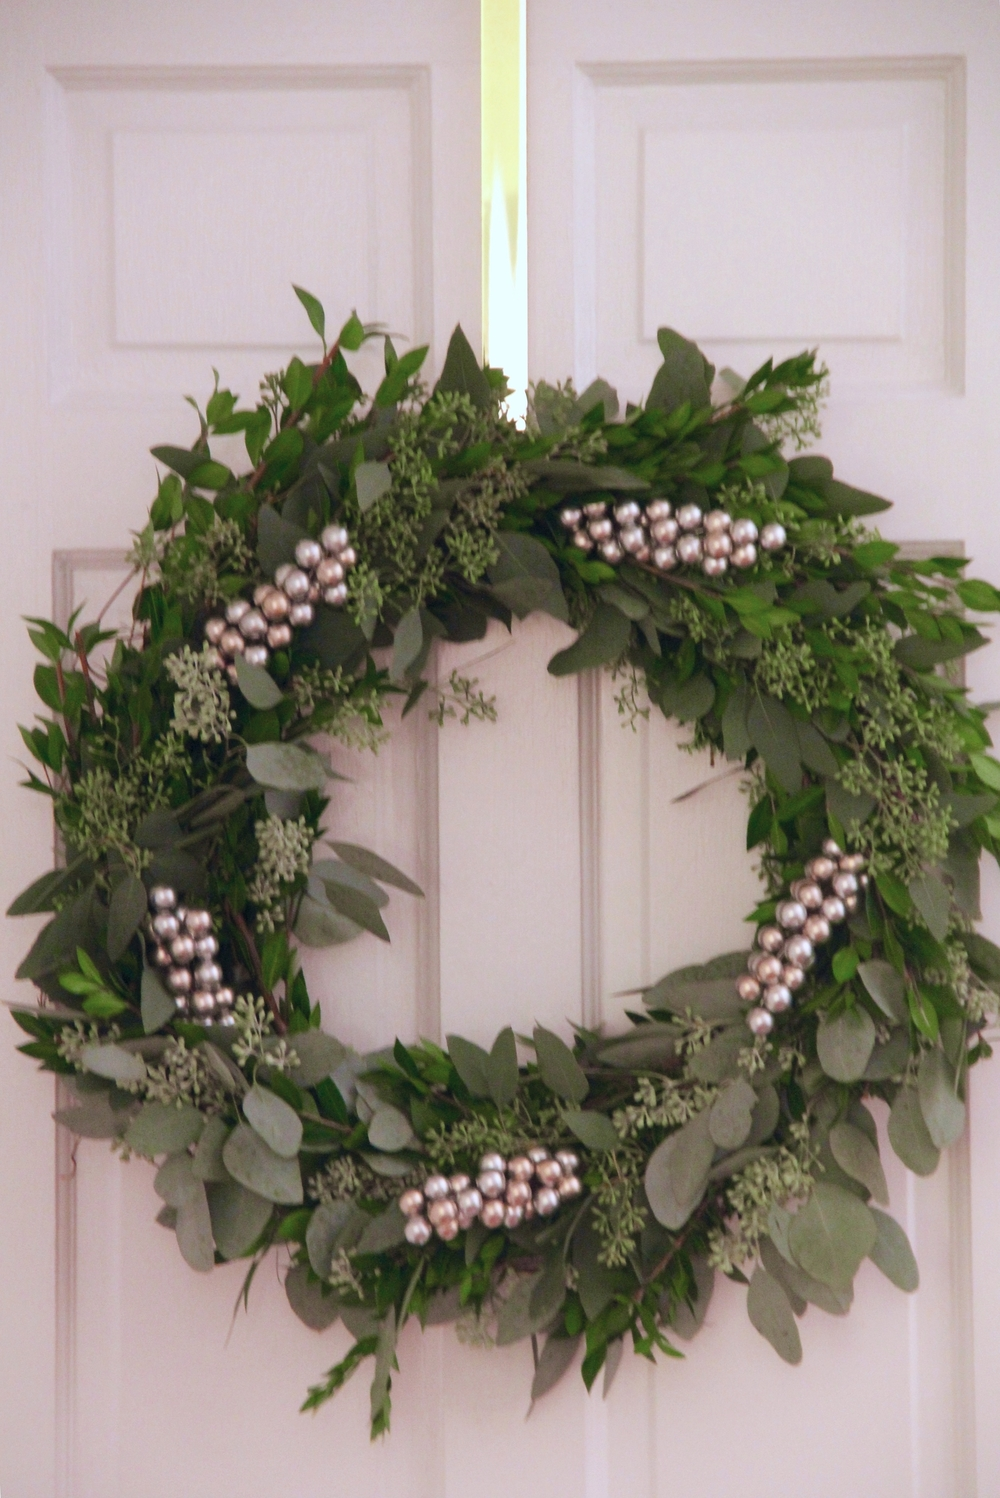 Embellished Wreath.jpg